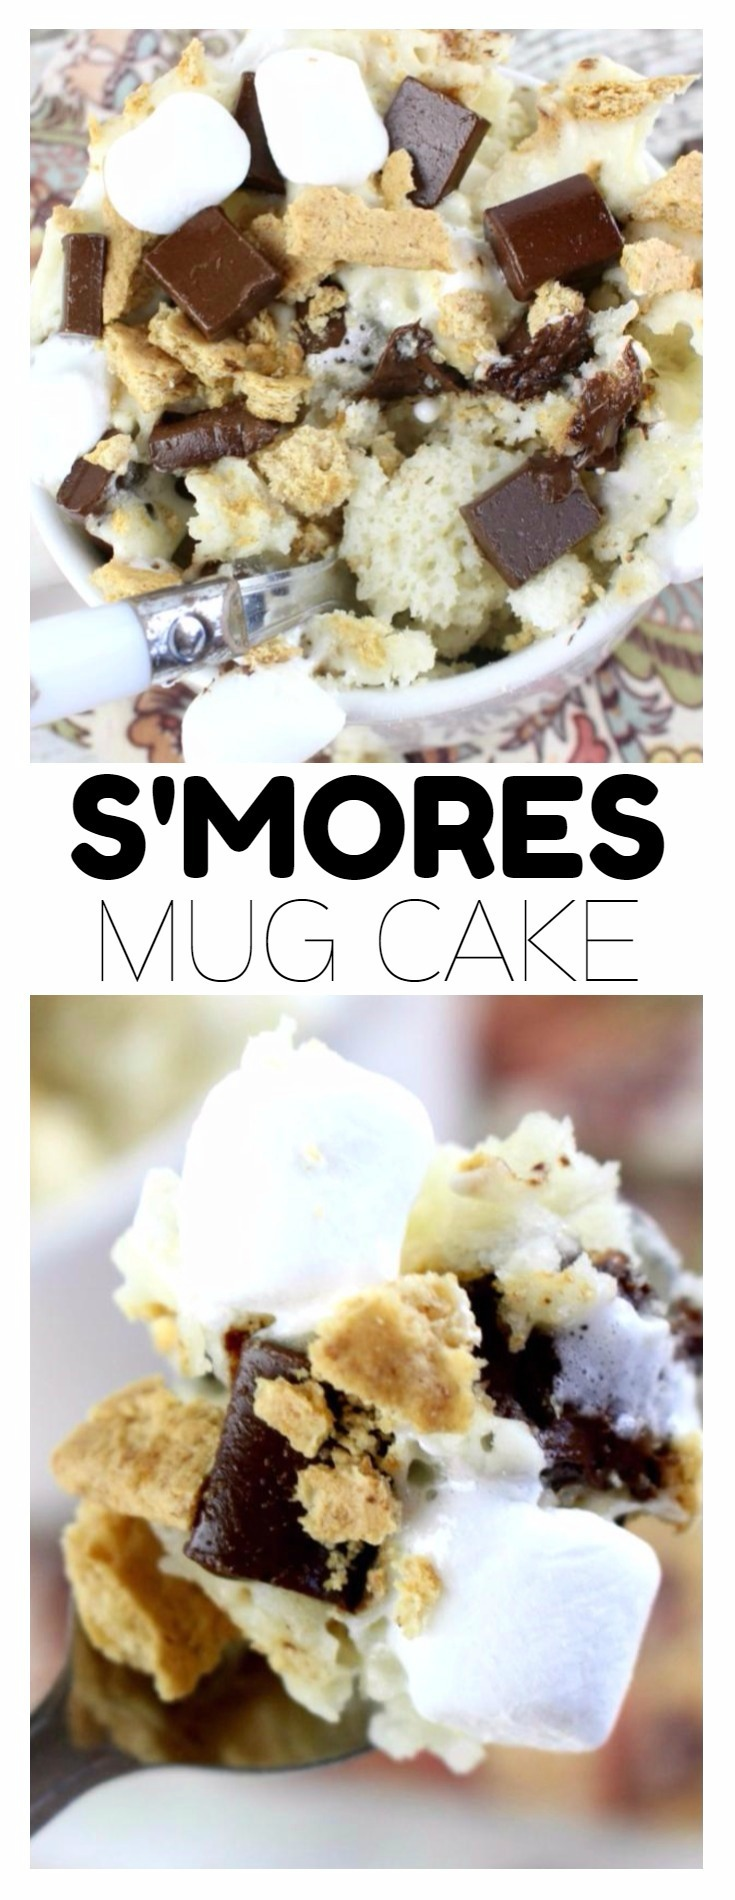 Packed full of chocolate, marshmallows and graham cracker crumbs, you can enjoy the summery flavor of s'mores in less than five minutes with this delicious and simple microwavable S'mores Mug Cake recipe! No campfire needed.